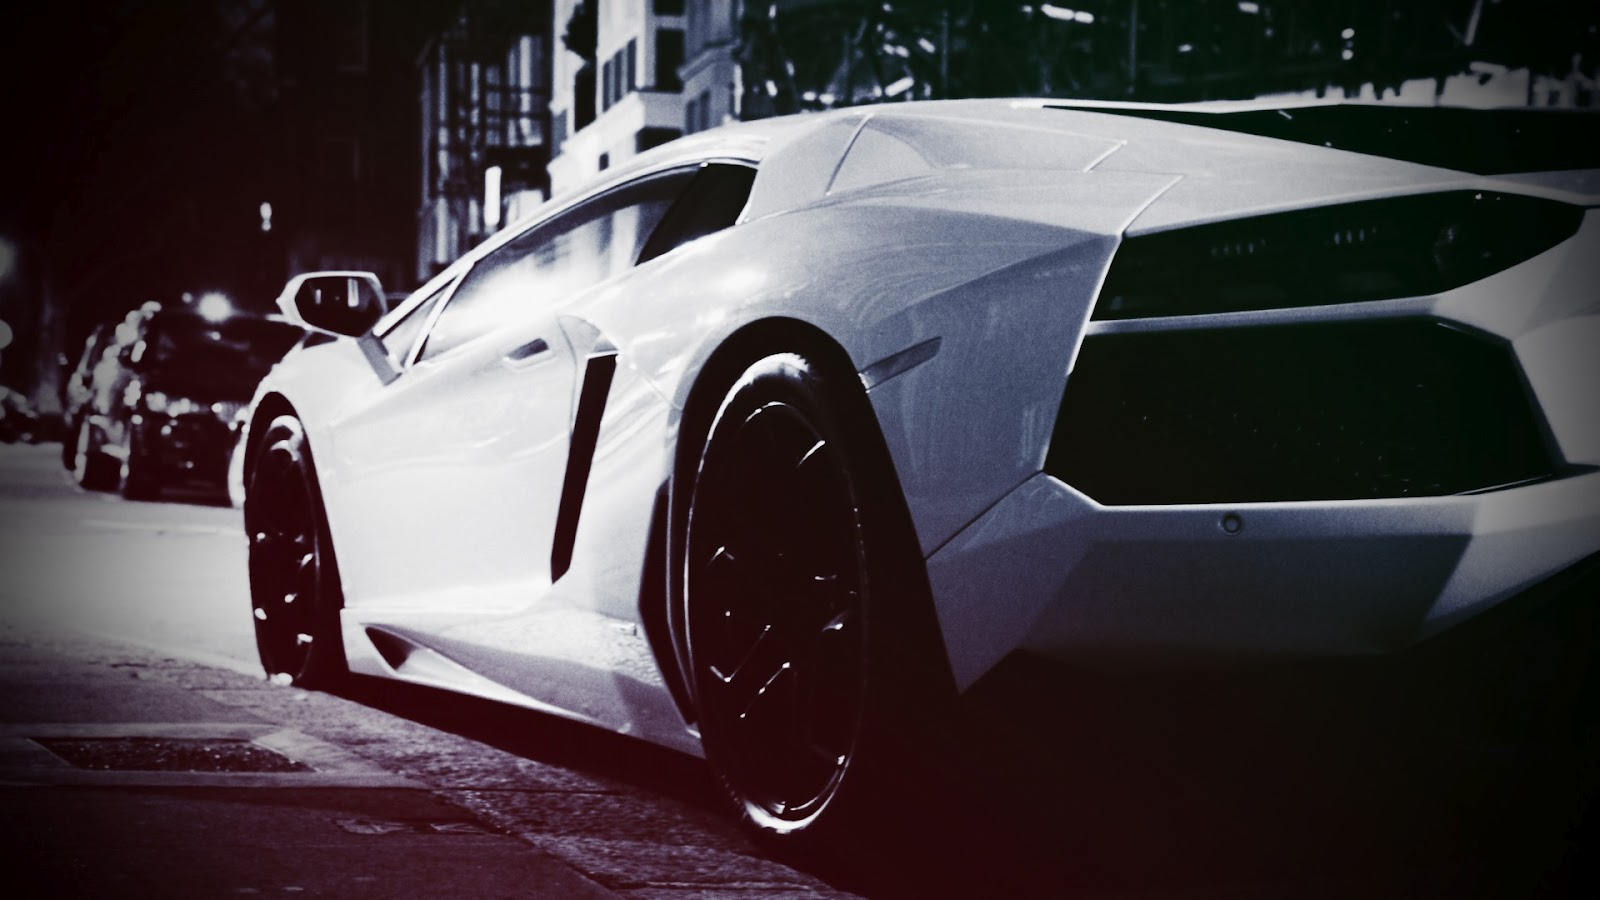 Lamborghini Aventador J Wallpaper HD HD Wallpaper for